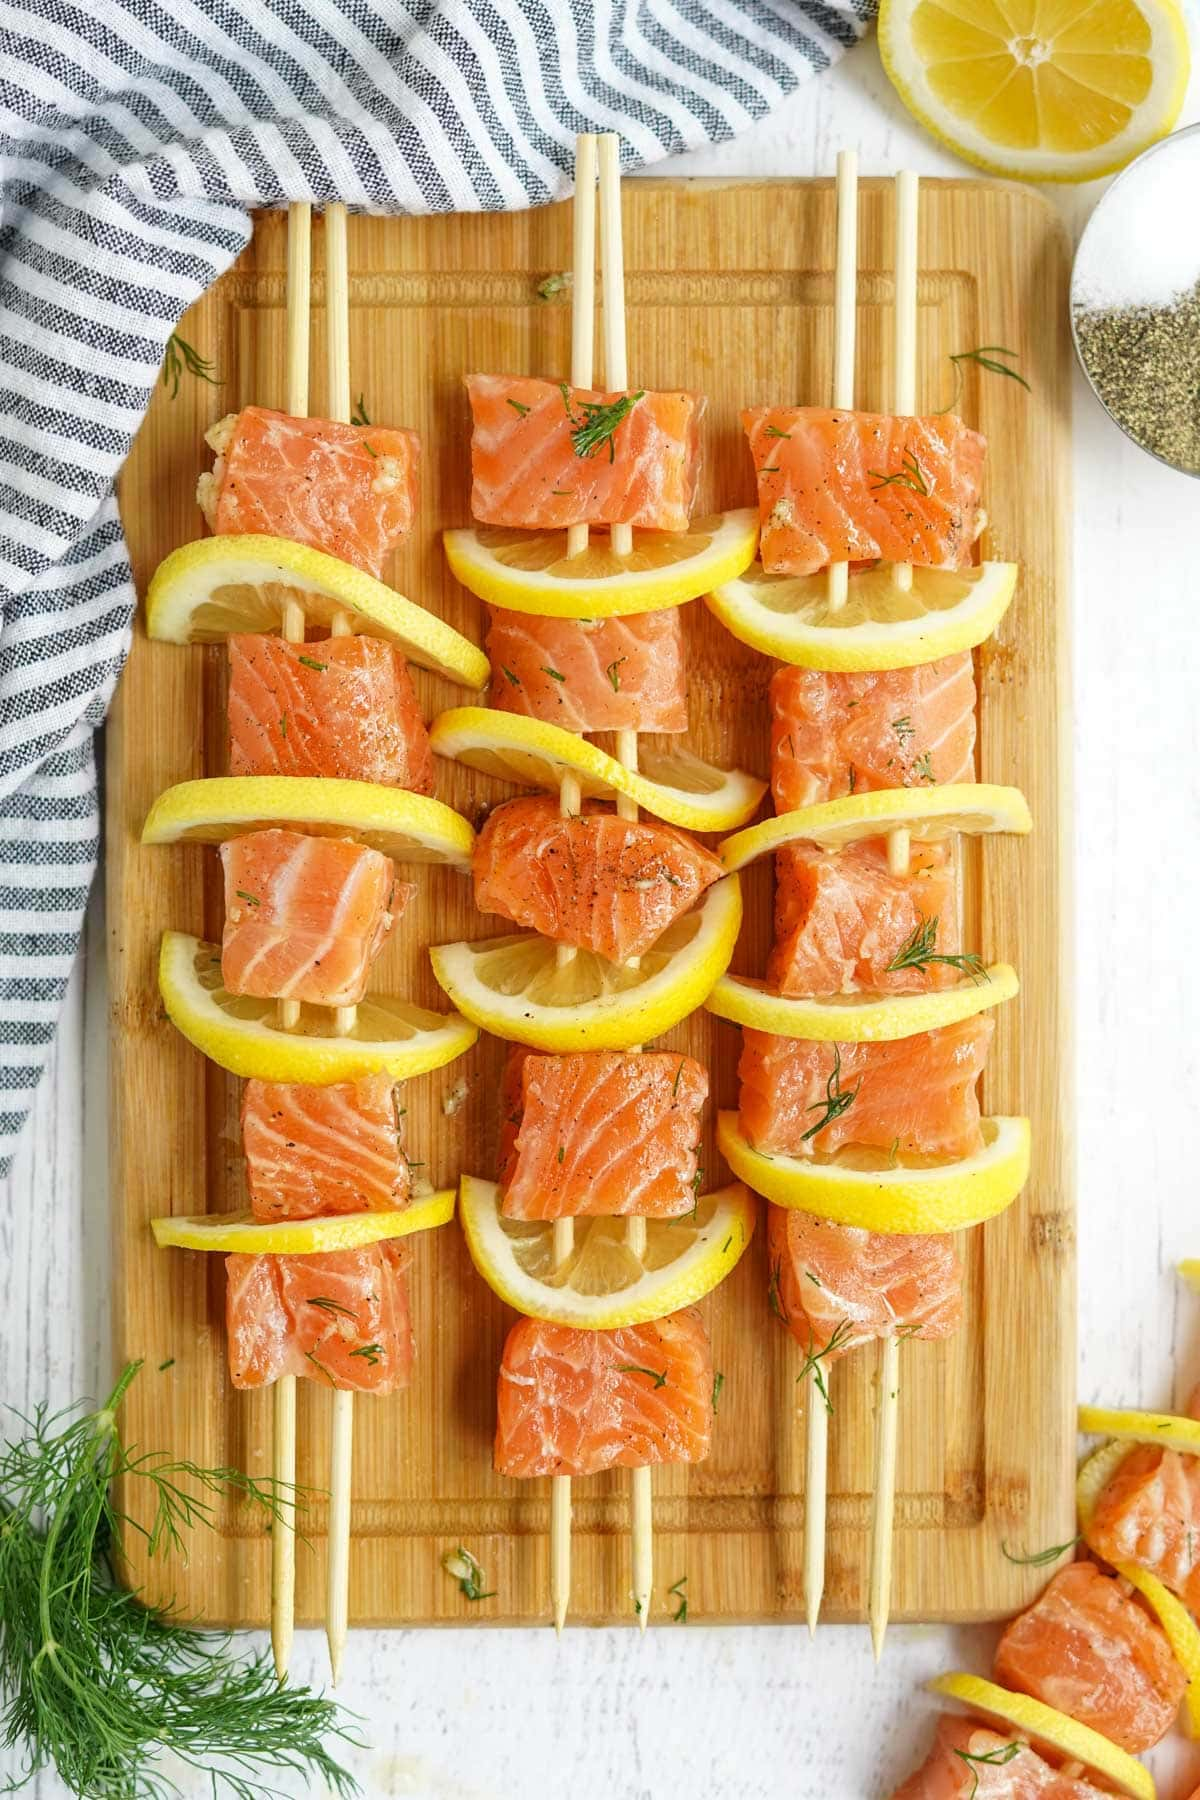 raw salmon threaded onto skeres with lemon slices and dill